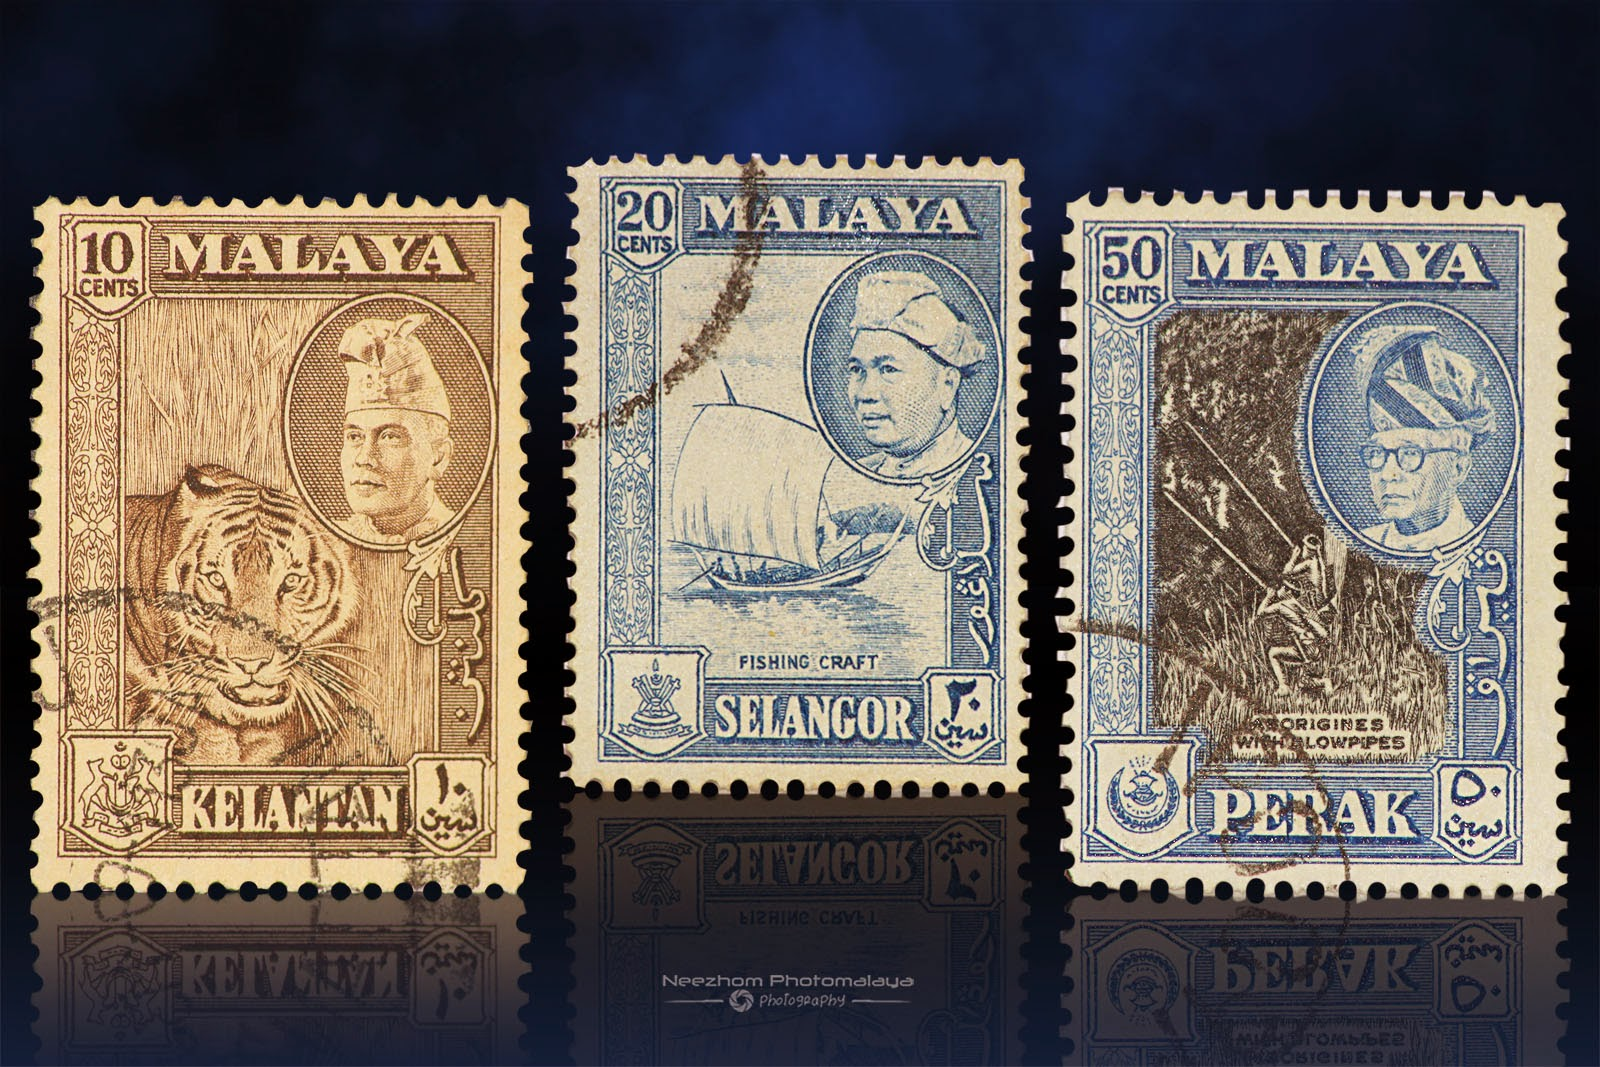 Malaya  1957 - 1961 stamps 10 Cents, 20 Cents, 50 Cents